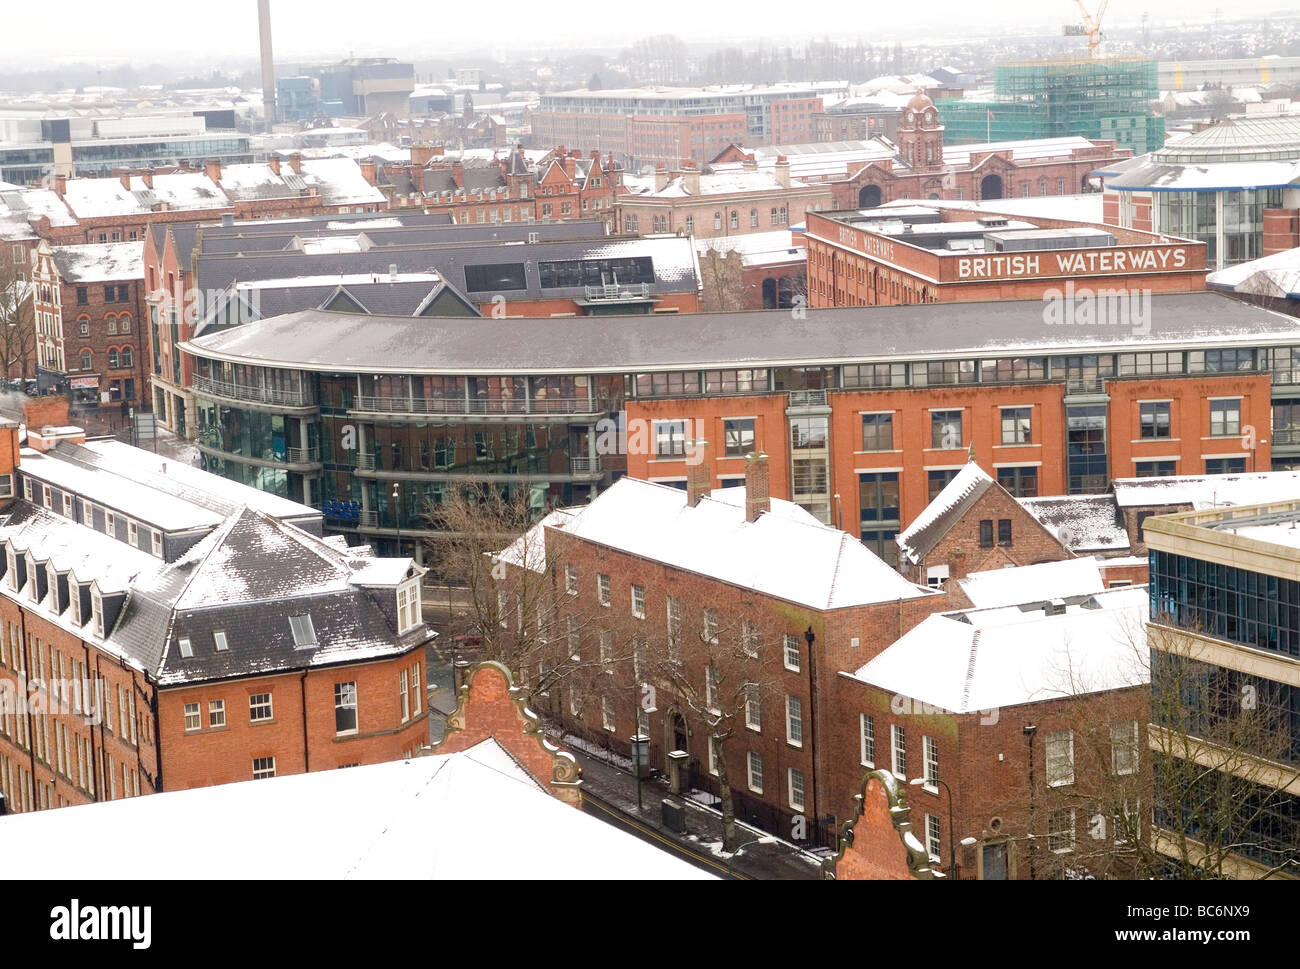 Nottingham skyline, viewed from the terrace of the castle in Nottingham City Centre. Nottinghamshire England UK - Stock Image